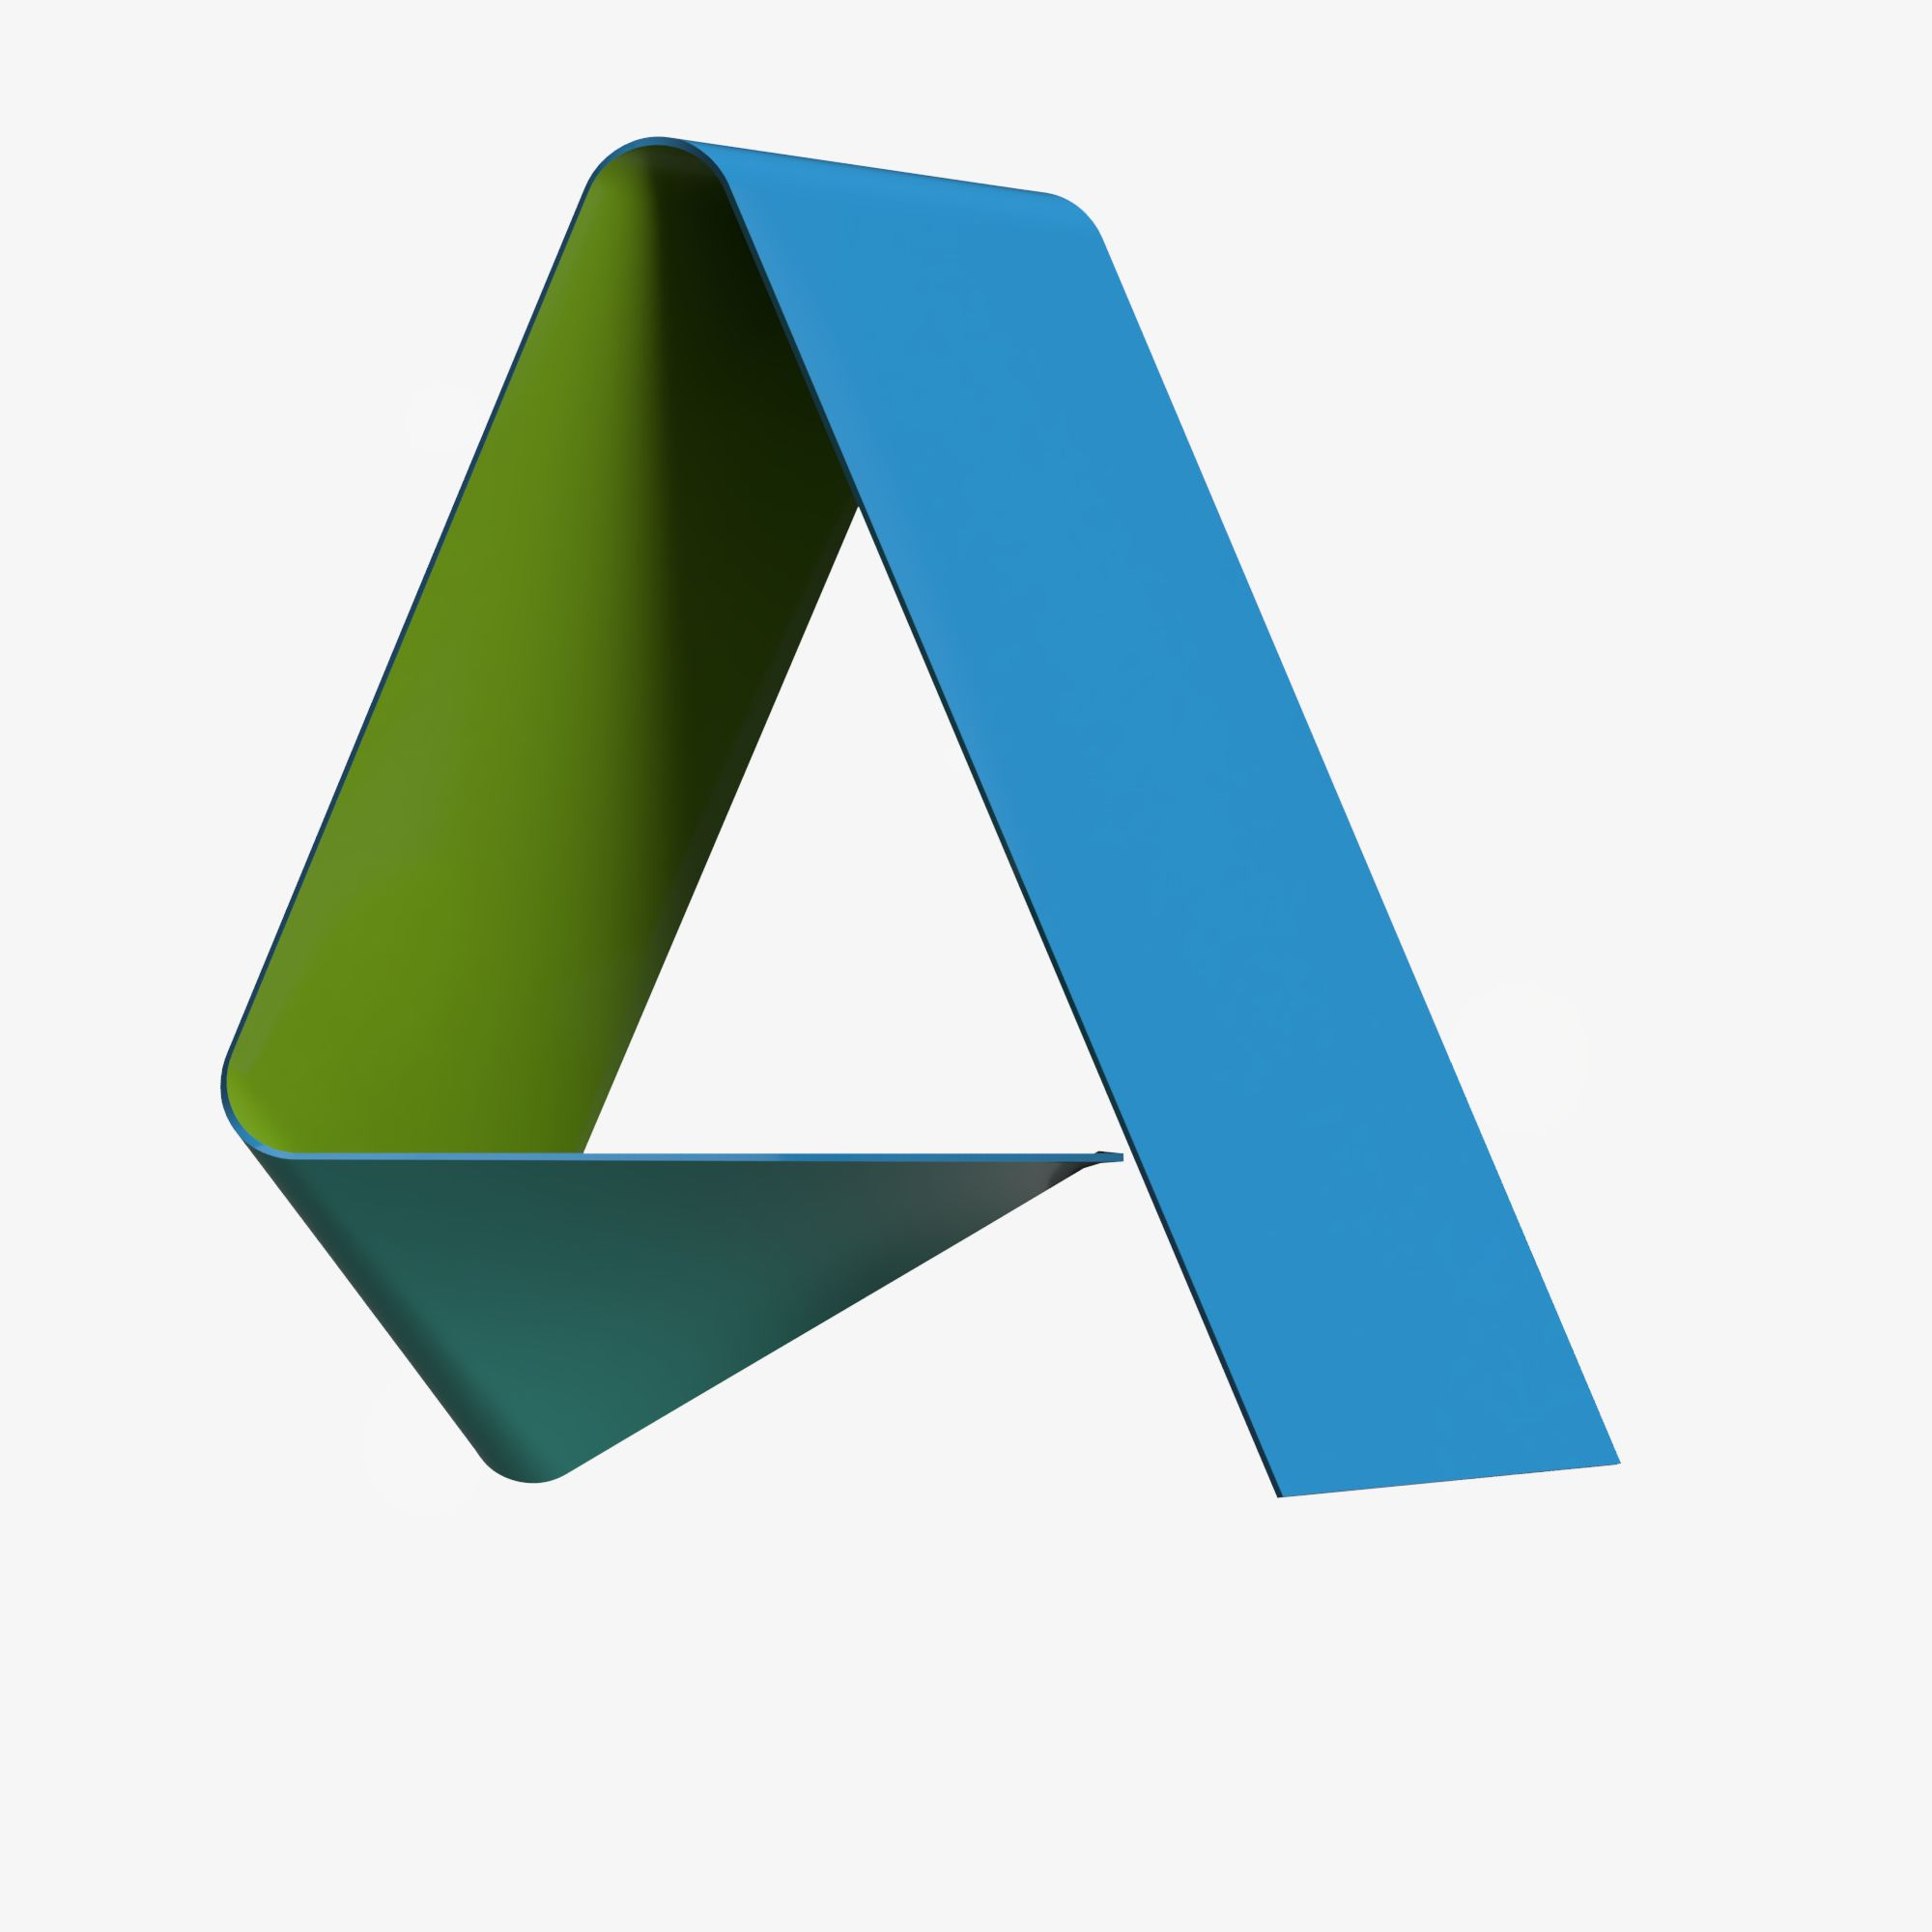 https://www.autodesk.com/products/inventor/overview